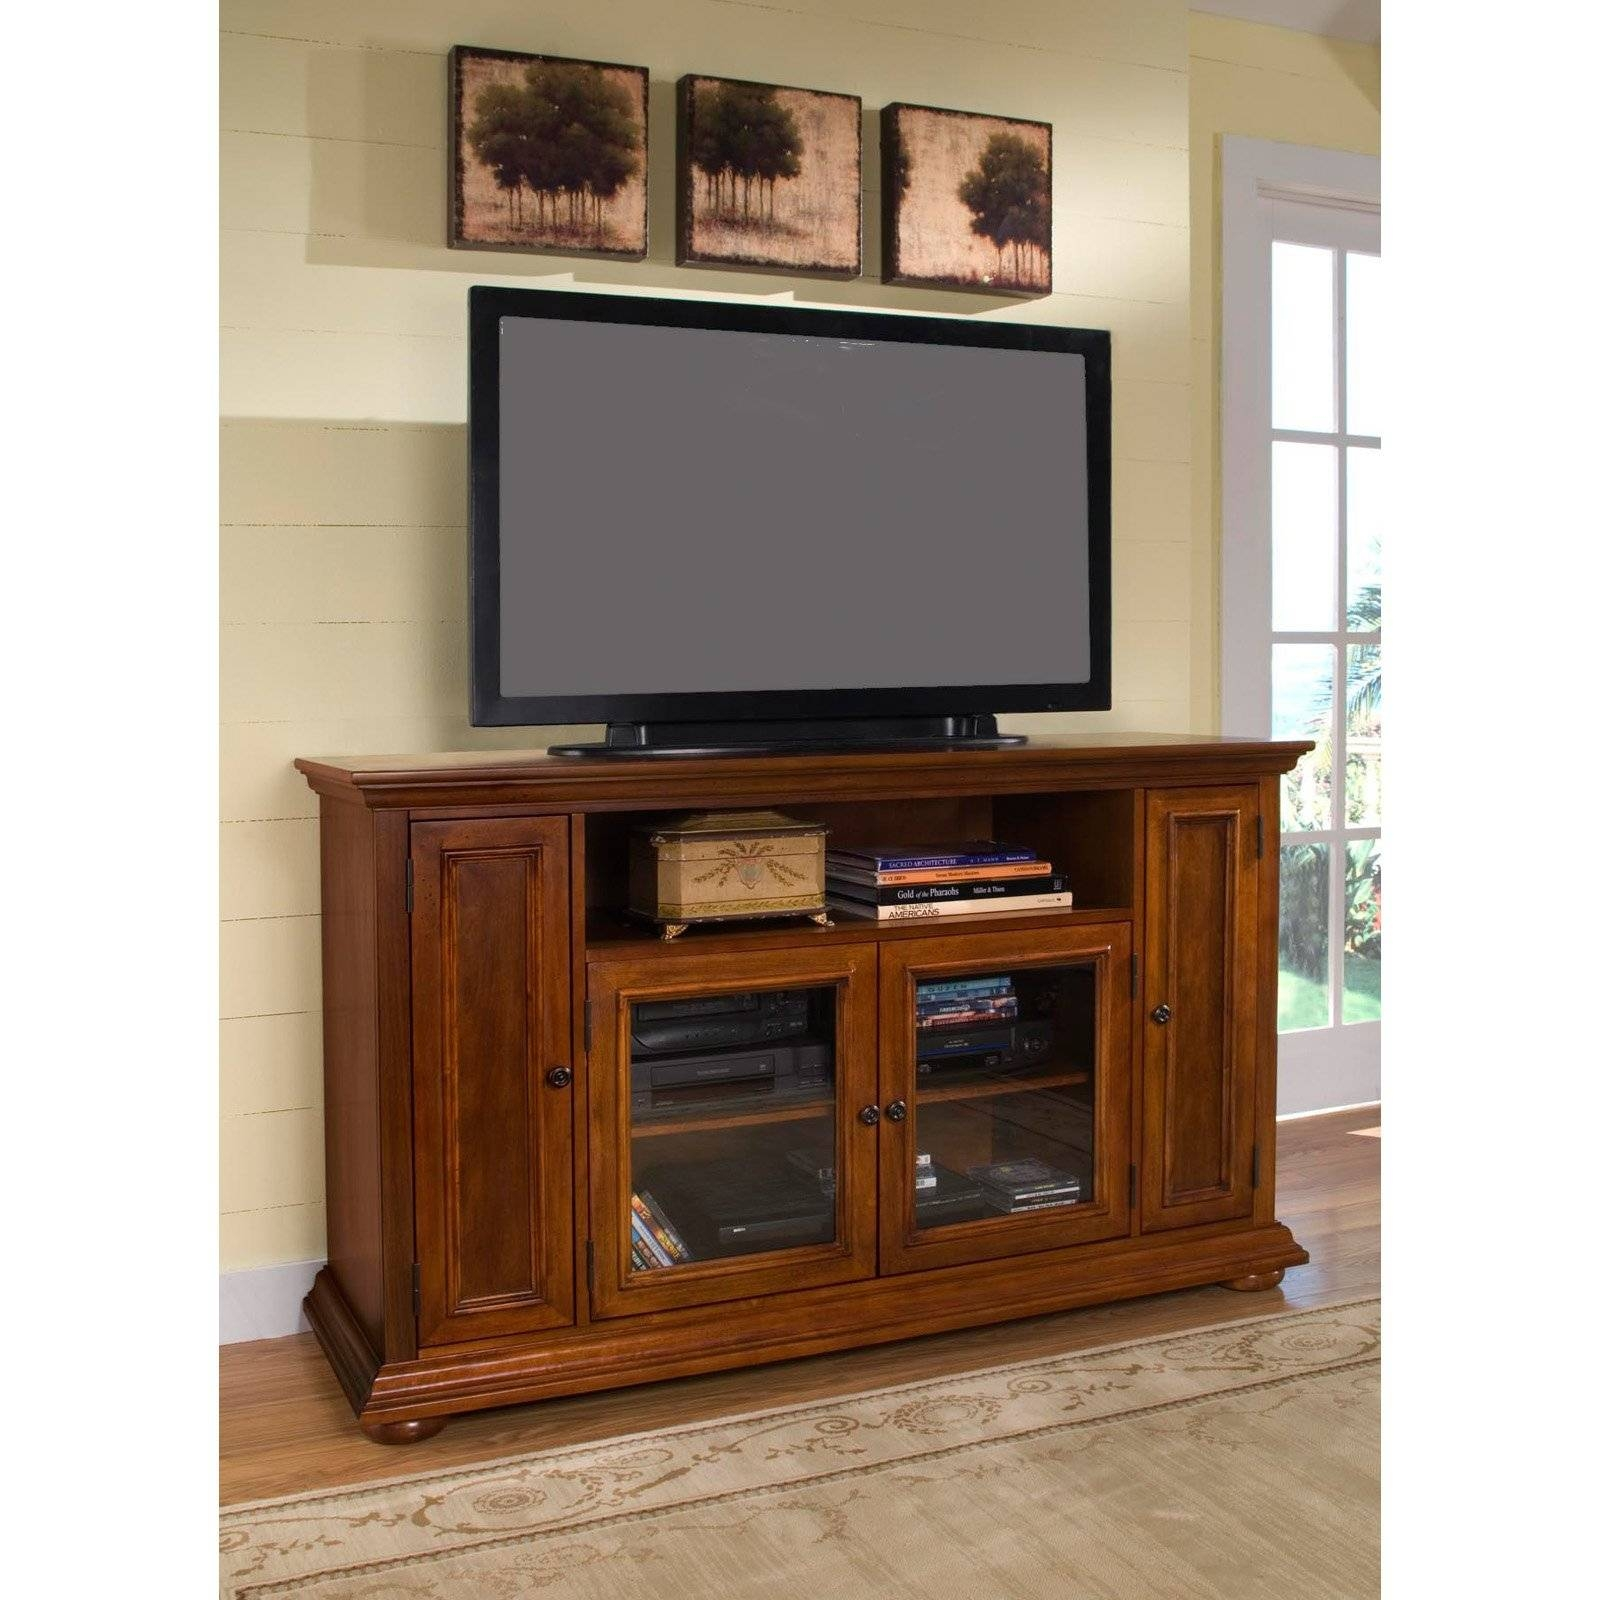 Oak Corner Tv Cabinets For Flat Screens | Memsaheb with regard to Oak Tv Stands for Flat Screens (Image 4 of 15)